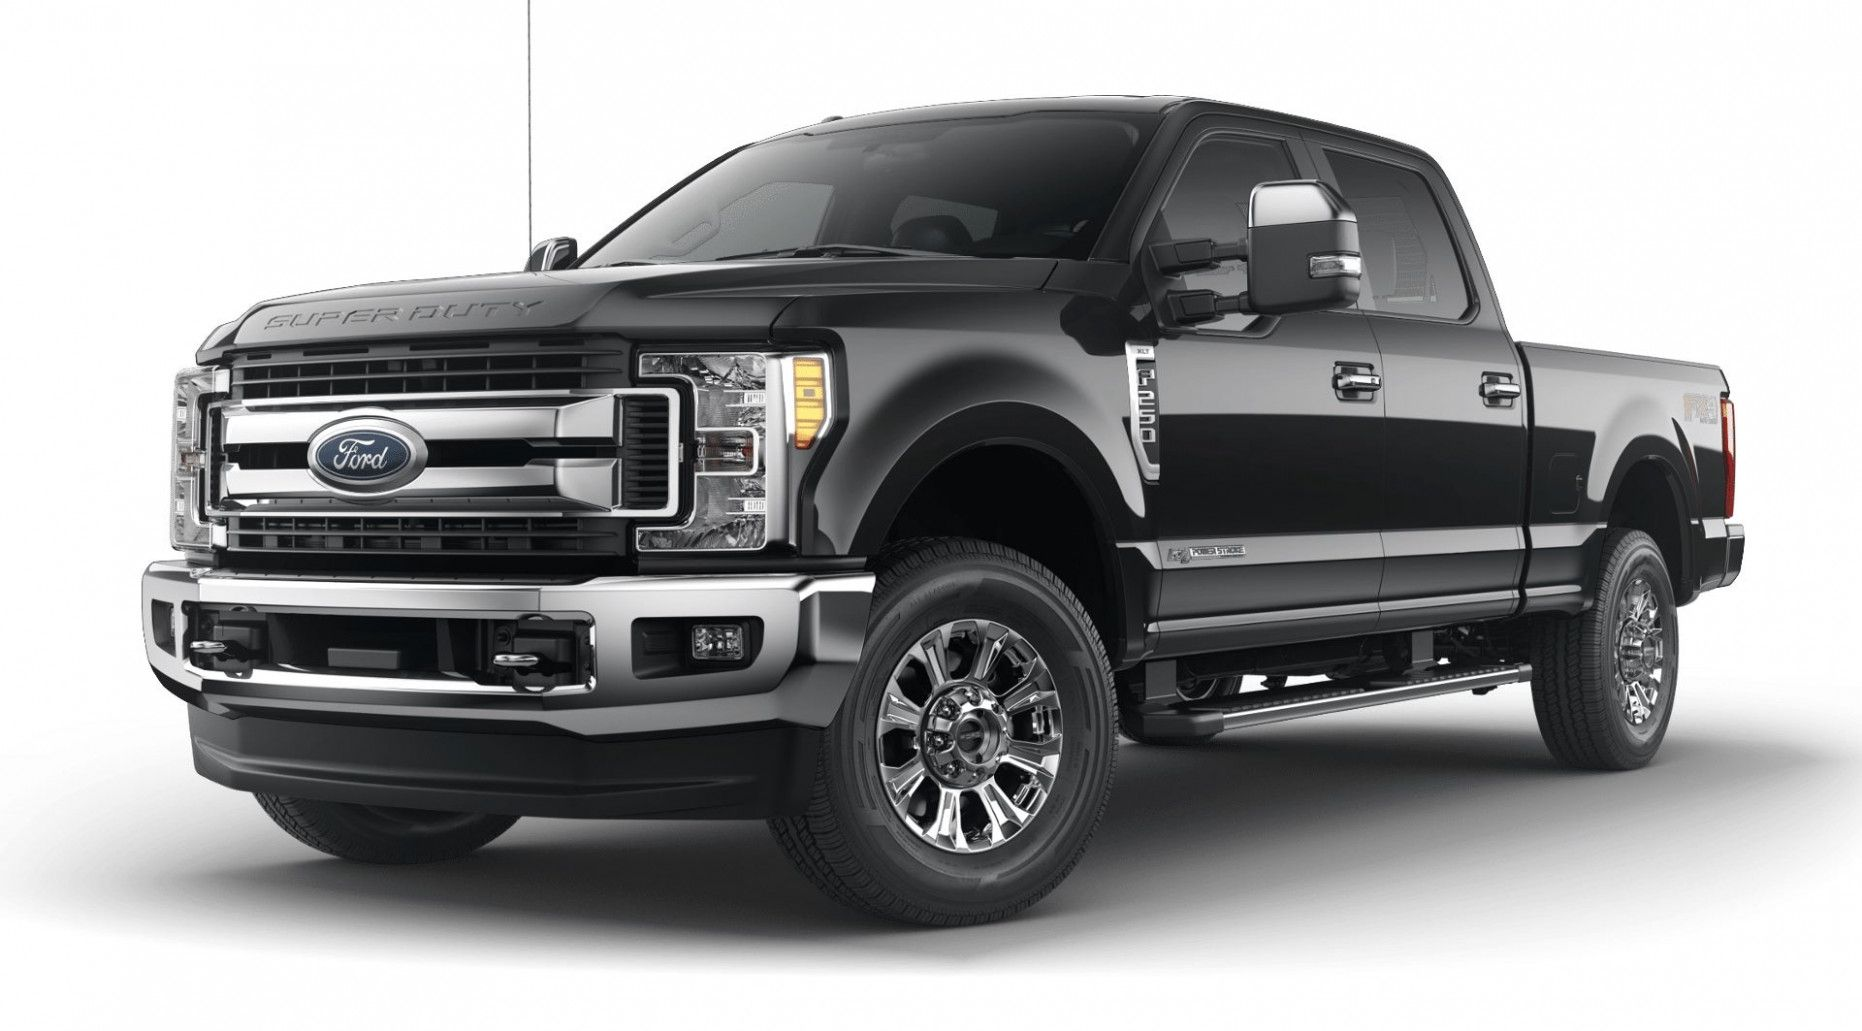 2021 Ford Super Duty Brochure Concept And Review General Motors Is Currently Adamantine At Assignment On Its Next Generation F Ford Super Duty Hybrid Car Ford